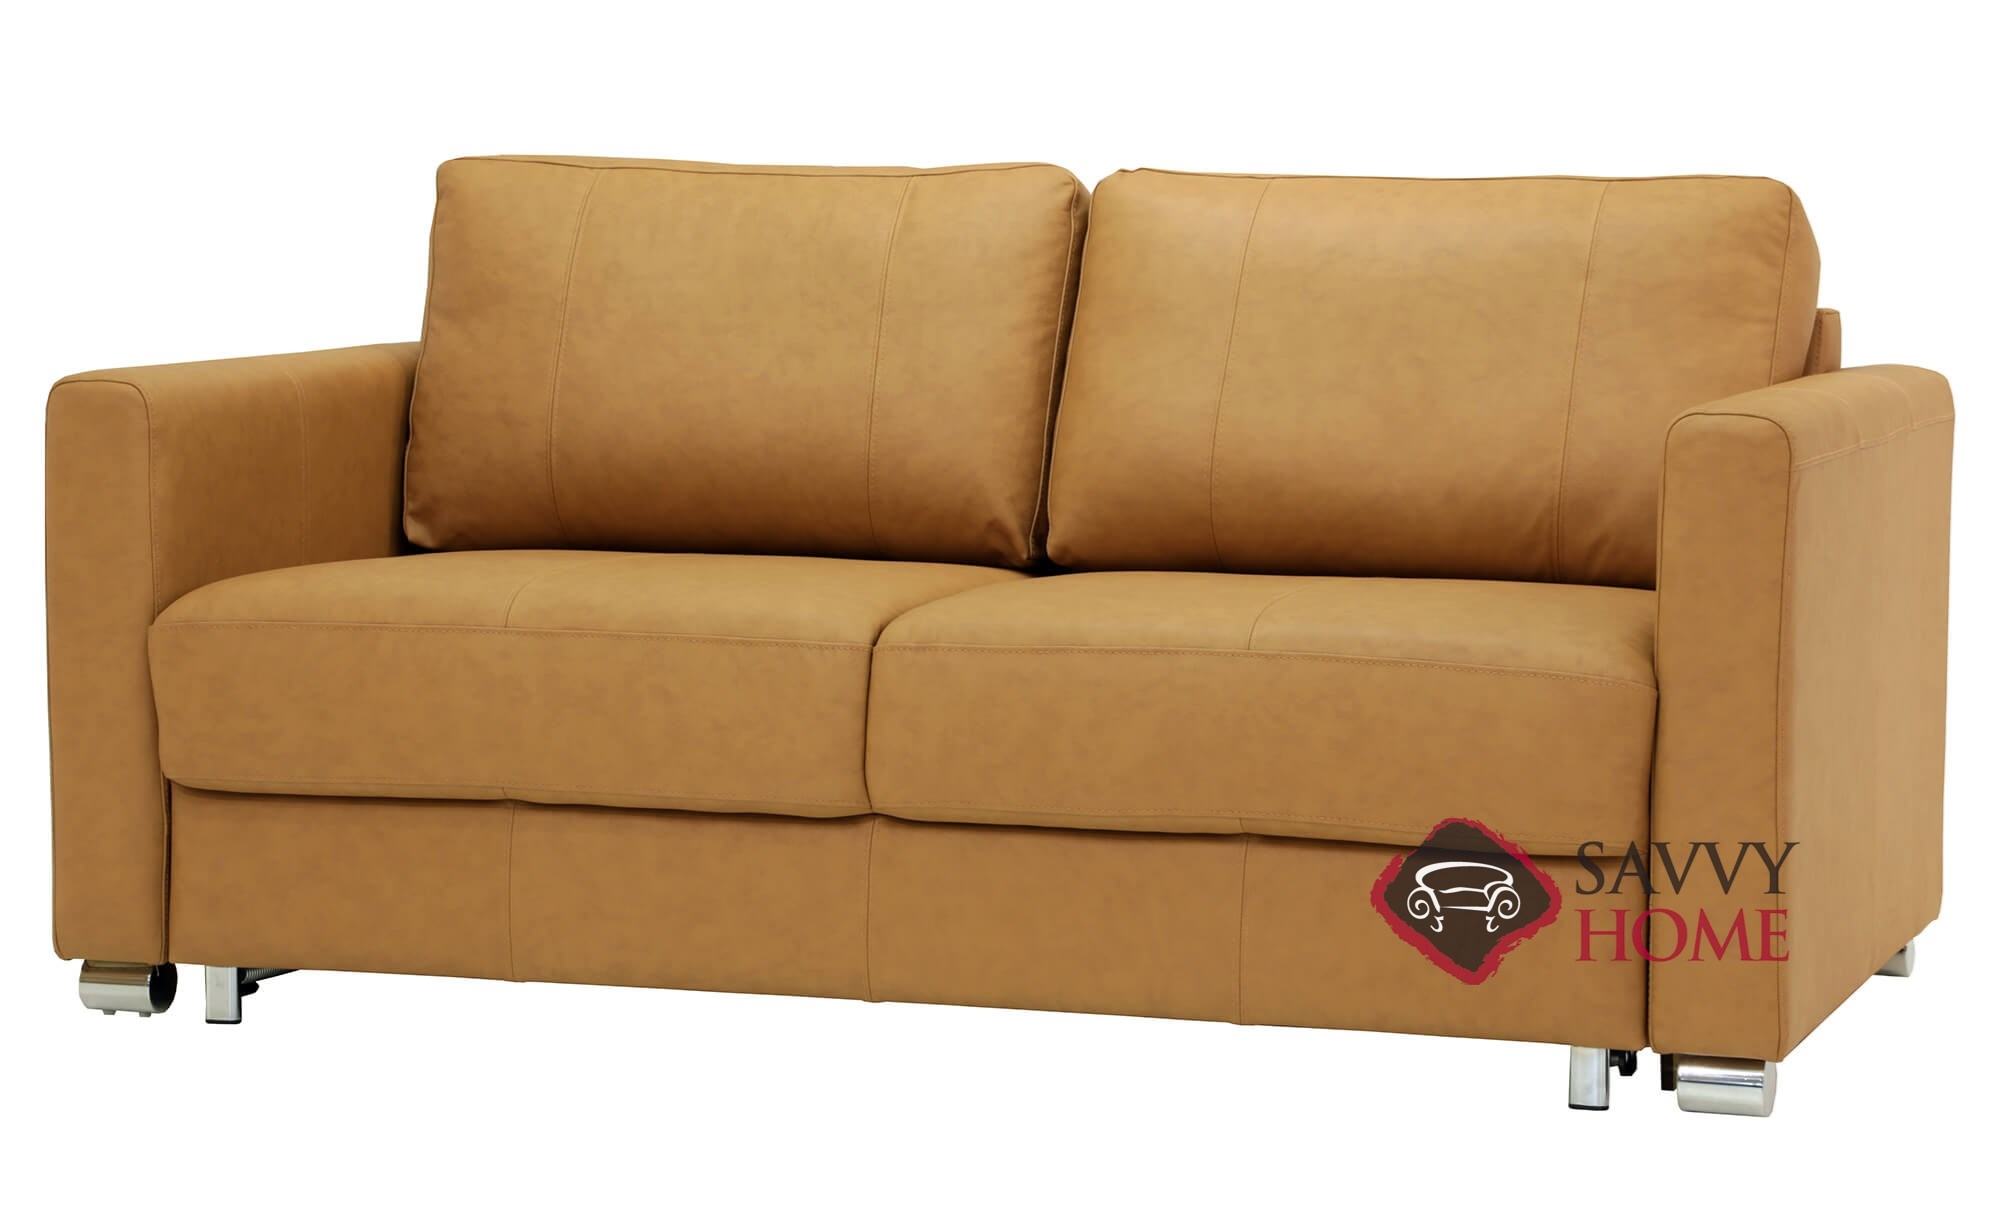 Awe Inspiring Fantasy Ii Queen Leather Sofa Bed By Luonto Theyellowbook Wood Chair Design Ideas Theyellowbookinfo